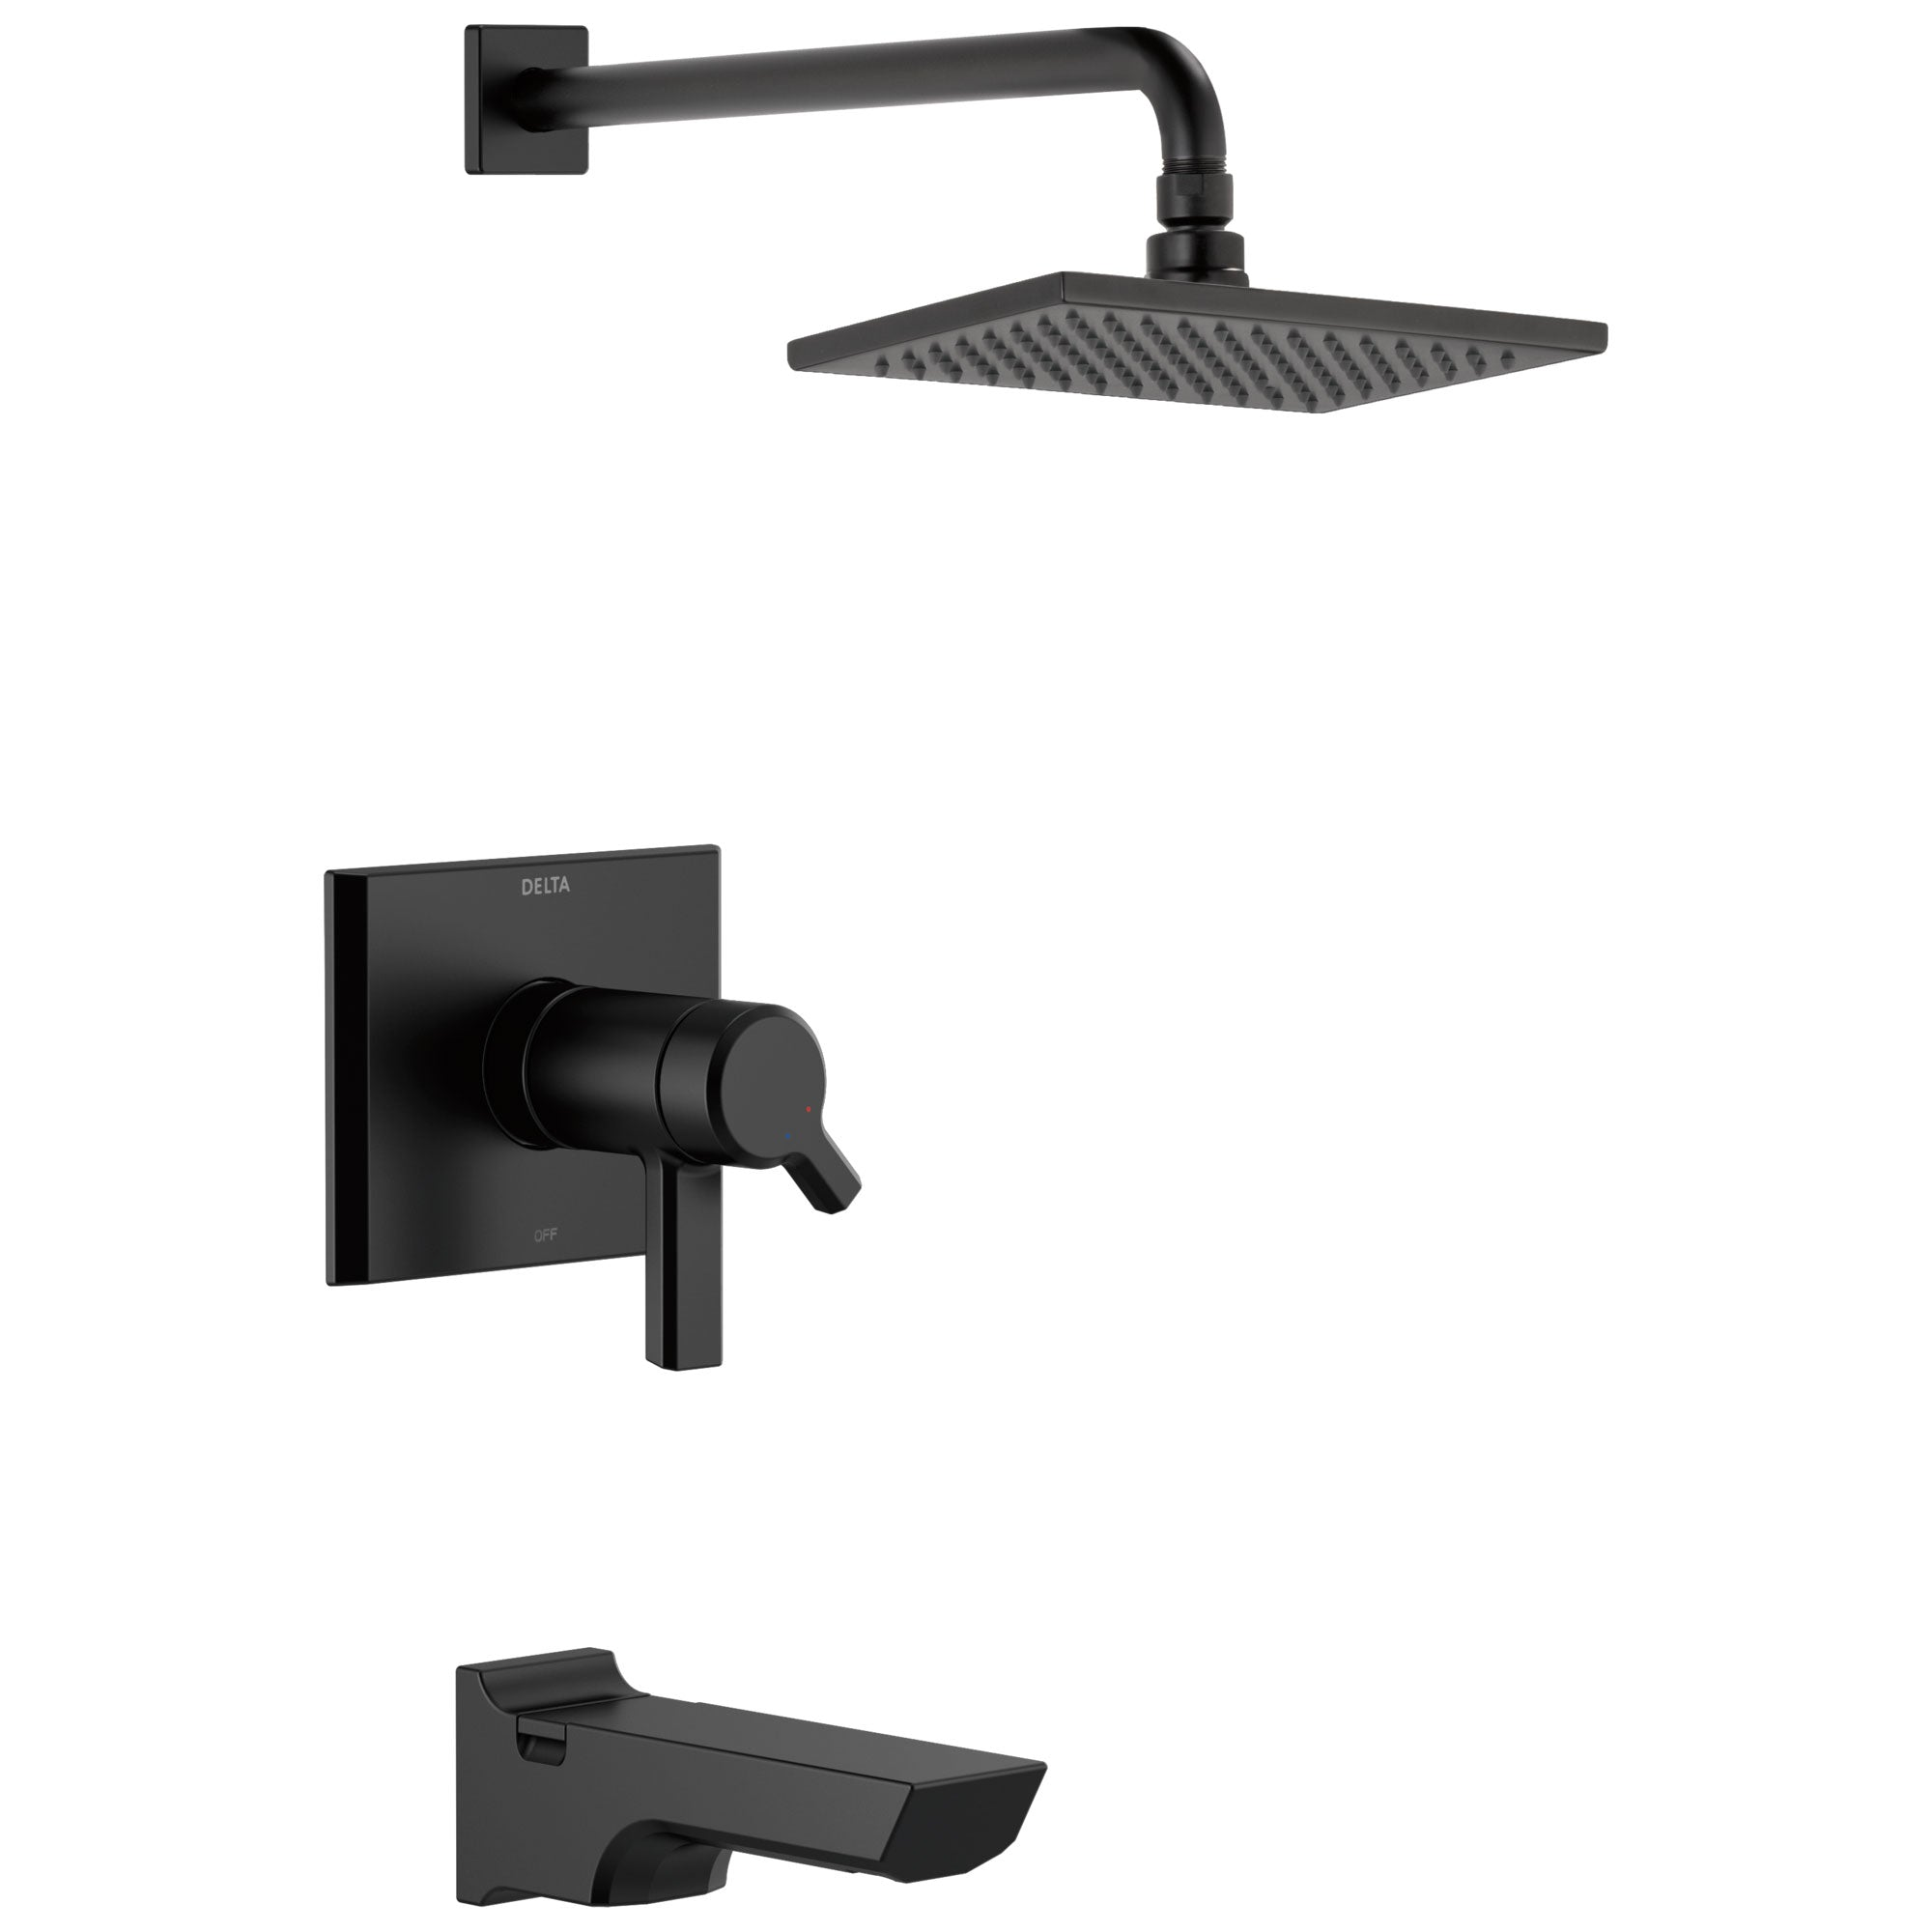 Delta Pivotal Matte Black Finish Thermostatic Tub & Shower Combination Faucet Includes 17T Cartridge, Handles, and Valve without Stops D3213V